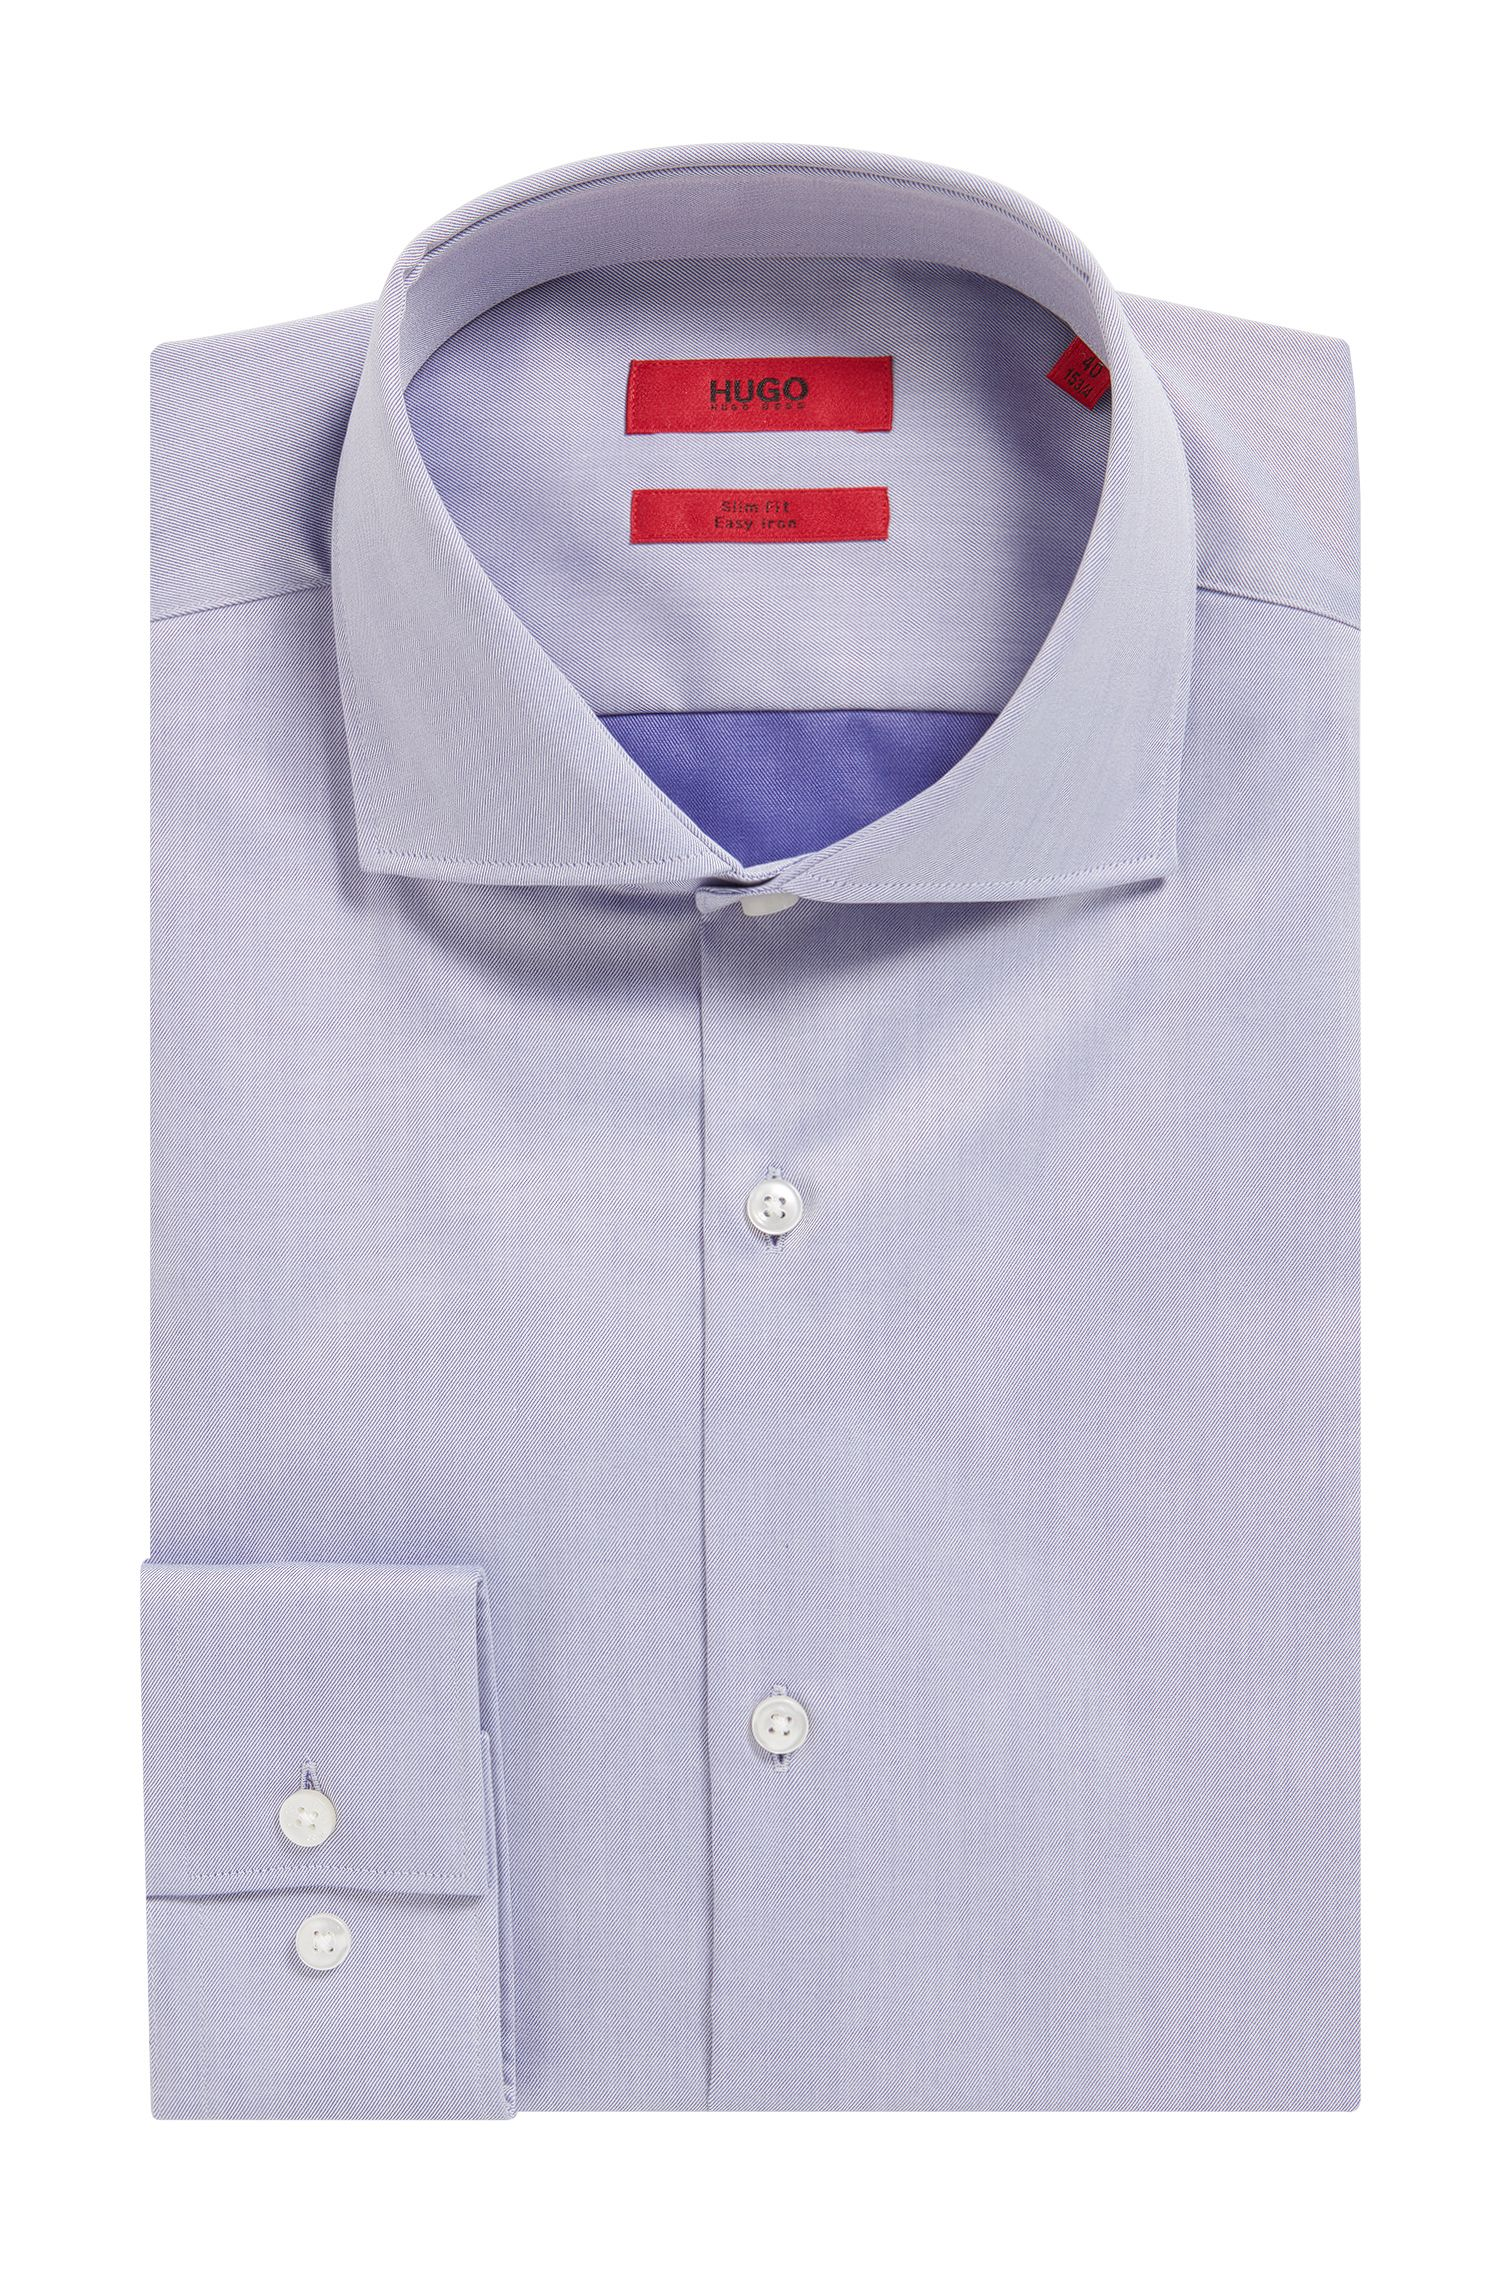 Easy Iron Cotton Poplin Shirt, Slim Fit | C-Jason